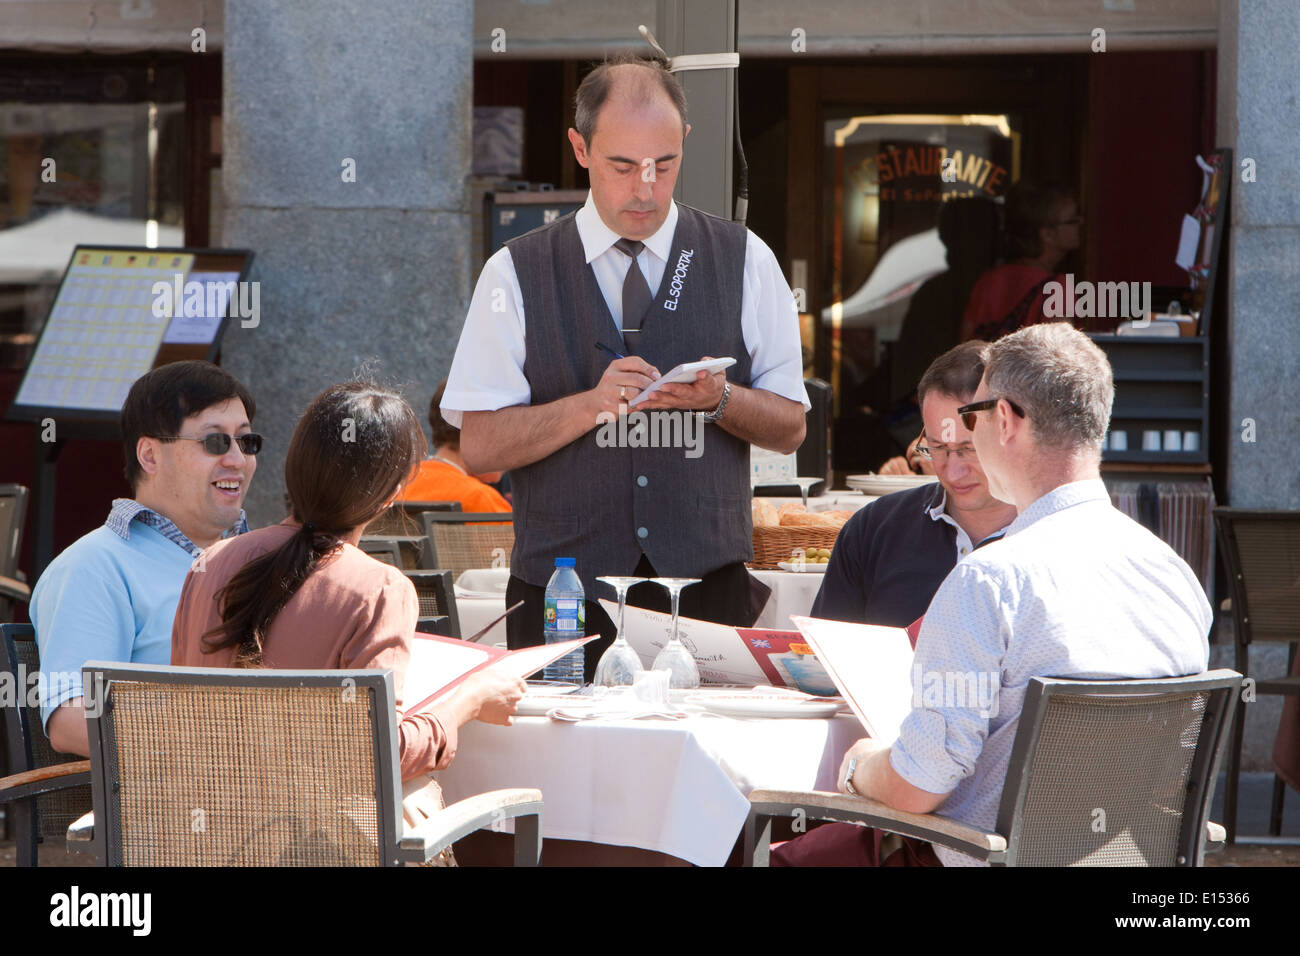 A waiter takes orders from diners at a restaurant in the Plaza Mayor - Stock Image